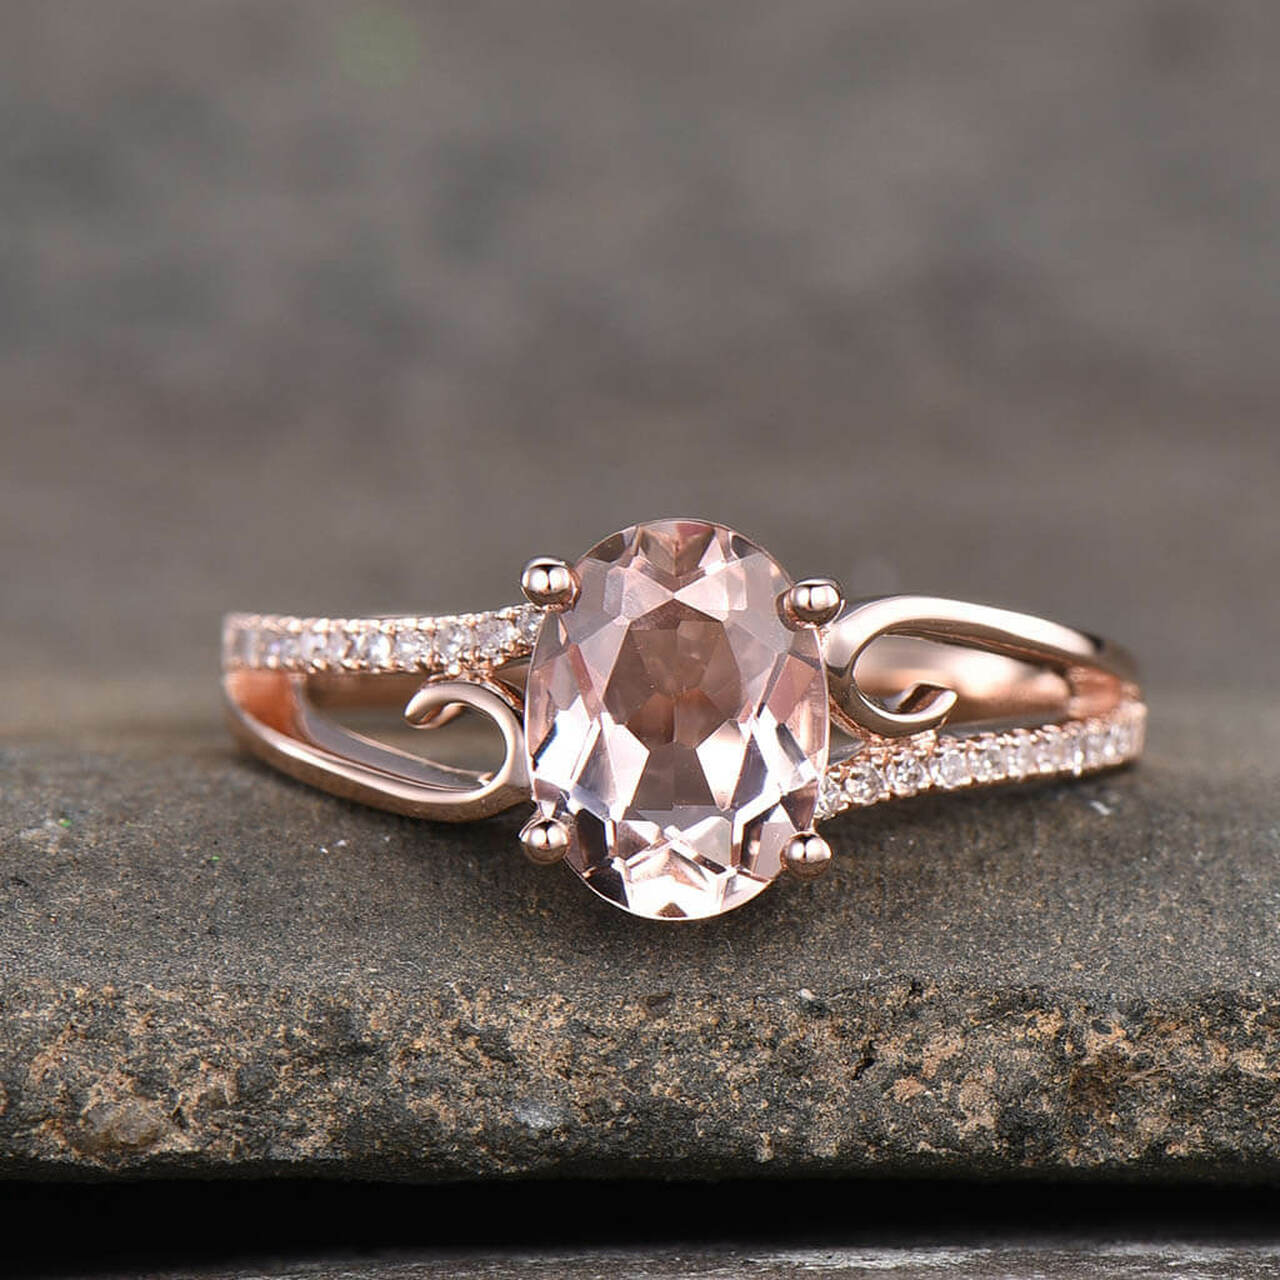 Morganite Rose Gold Engagement Ring - Picking the Right Ring